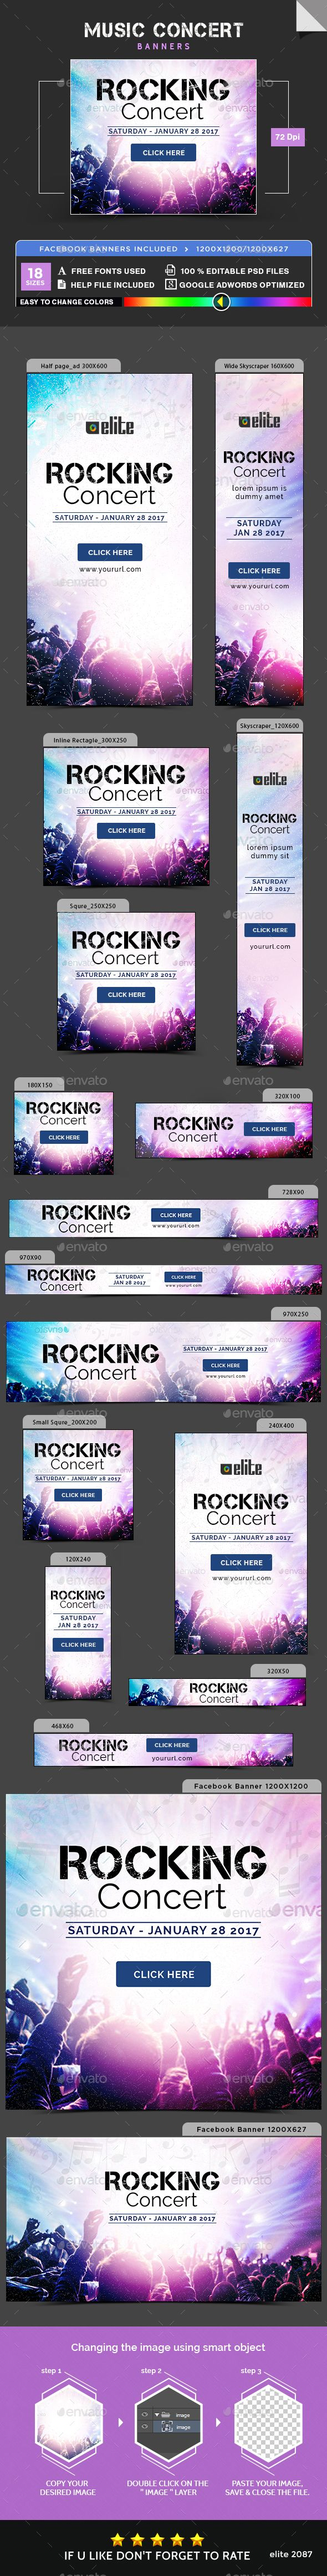 Music Concert Banners - Banners & Ads Web Elements Download here : https://graphicriver.net/item/music-concert-banners/19279235?s_rank=66&ref=Al-fatih